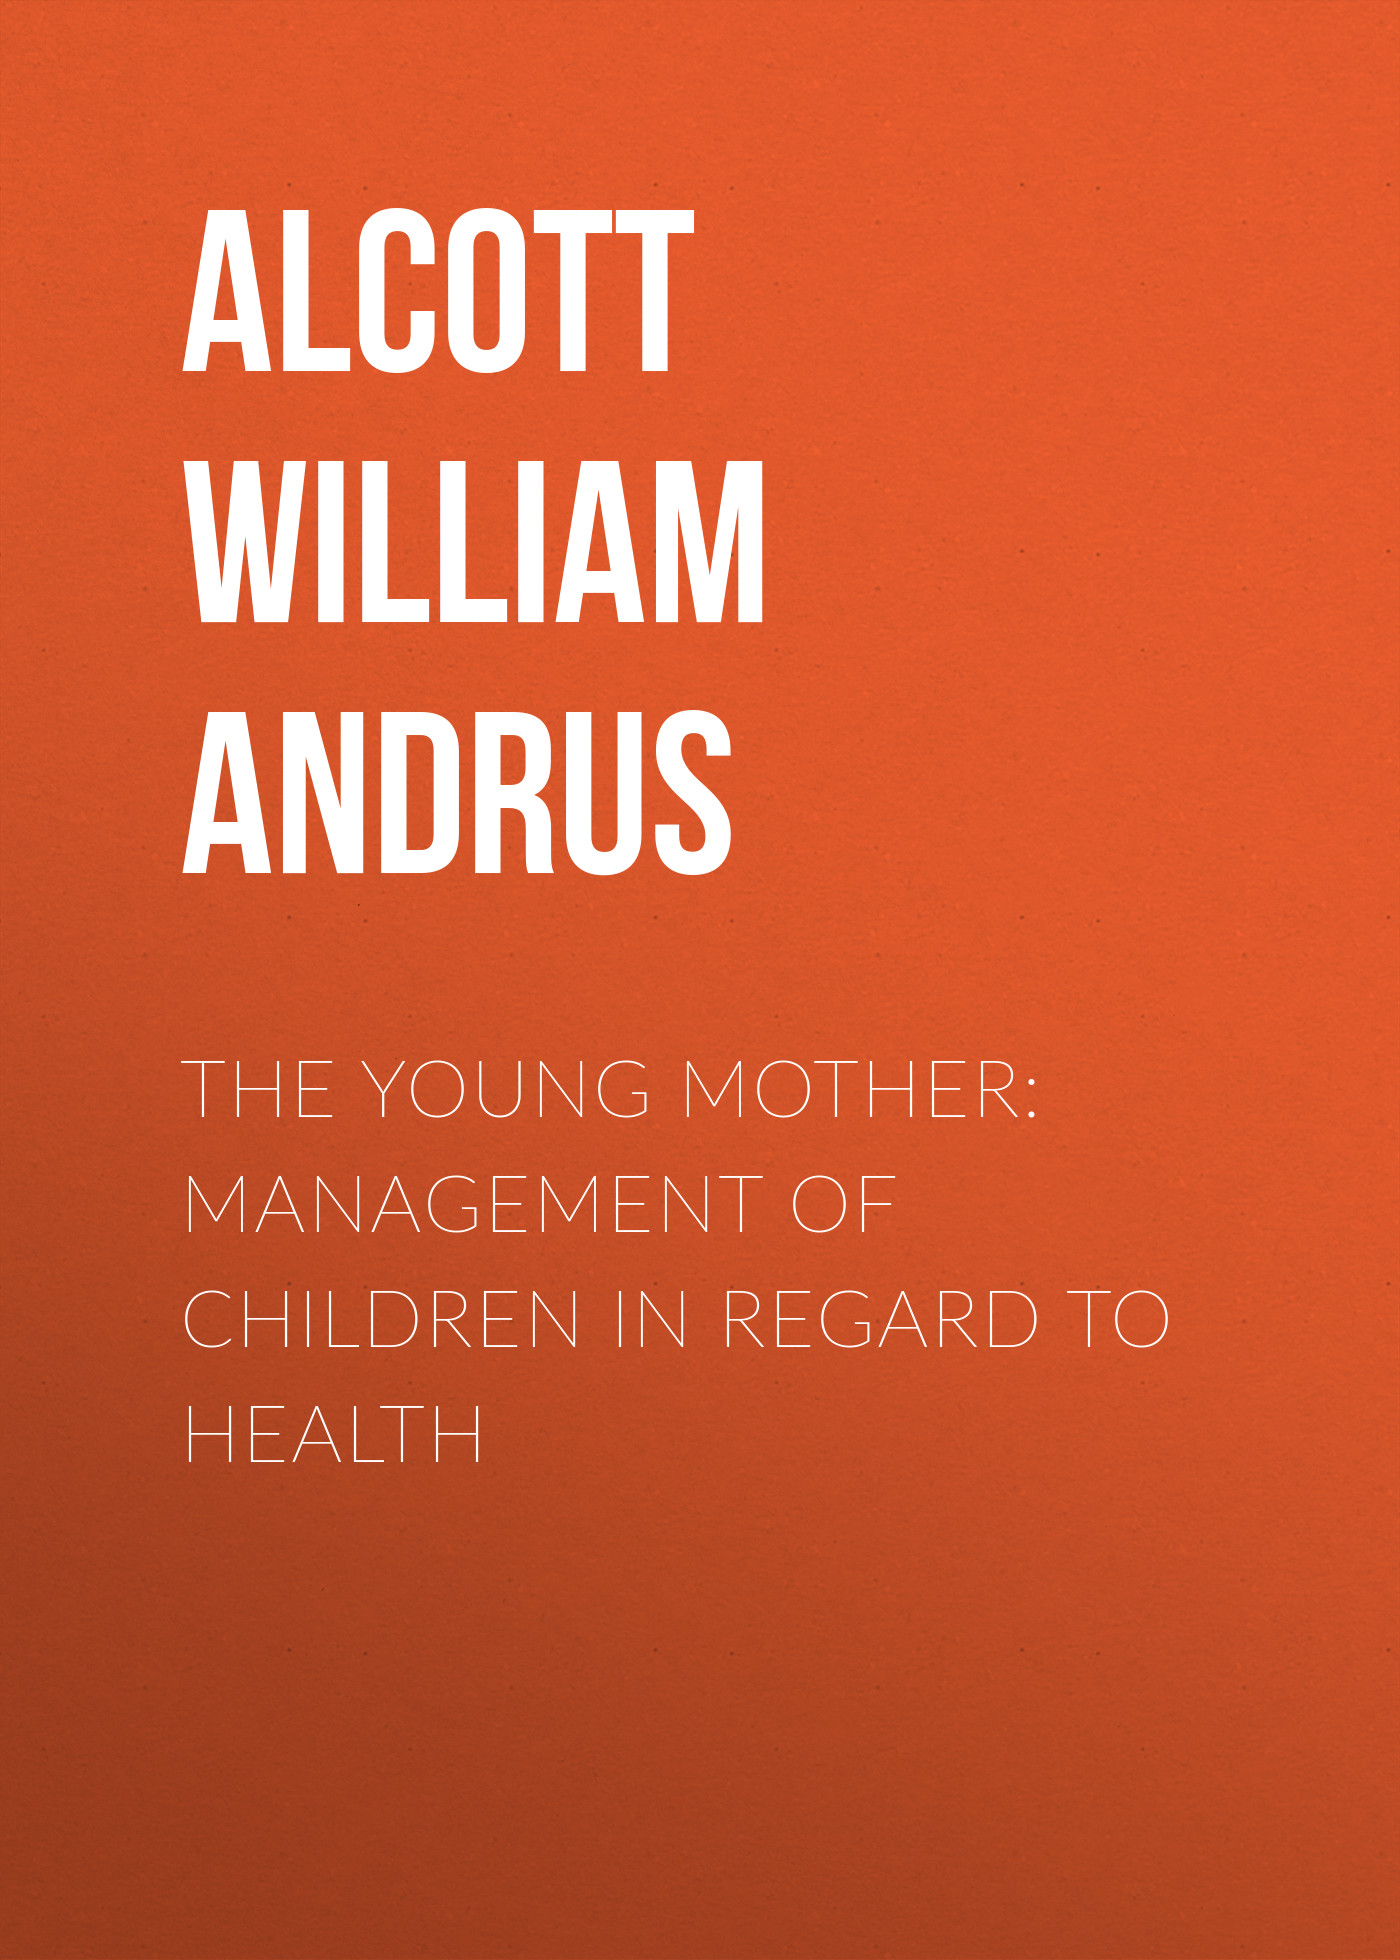 Alcott William Andrus The Young Mother: Management of Children in Regard to Health alcott william andrus the young mother management of children in regard to health